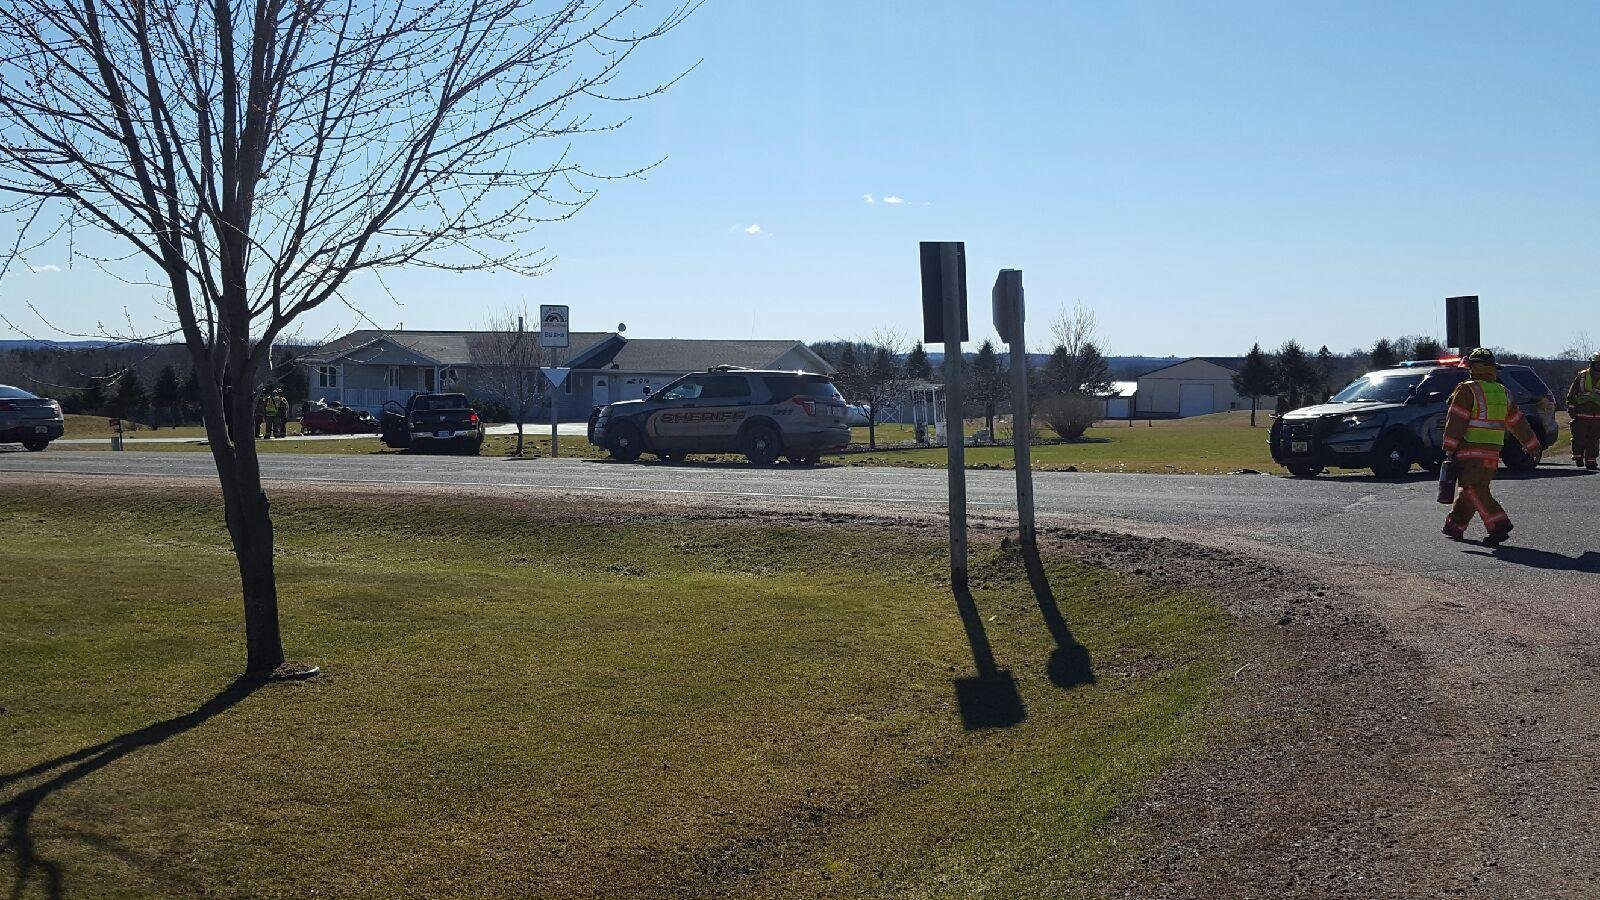 Toys For Trucks Wausau Wi : Update dead in crash north of wausau wkow madison